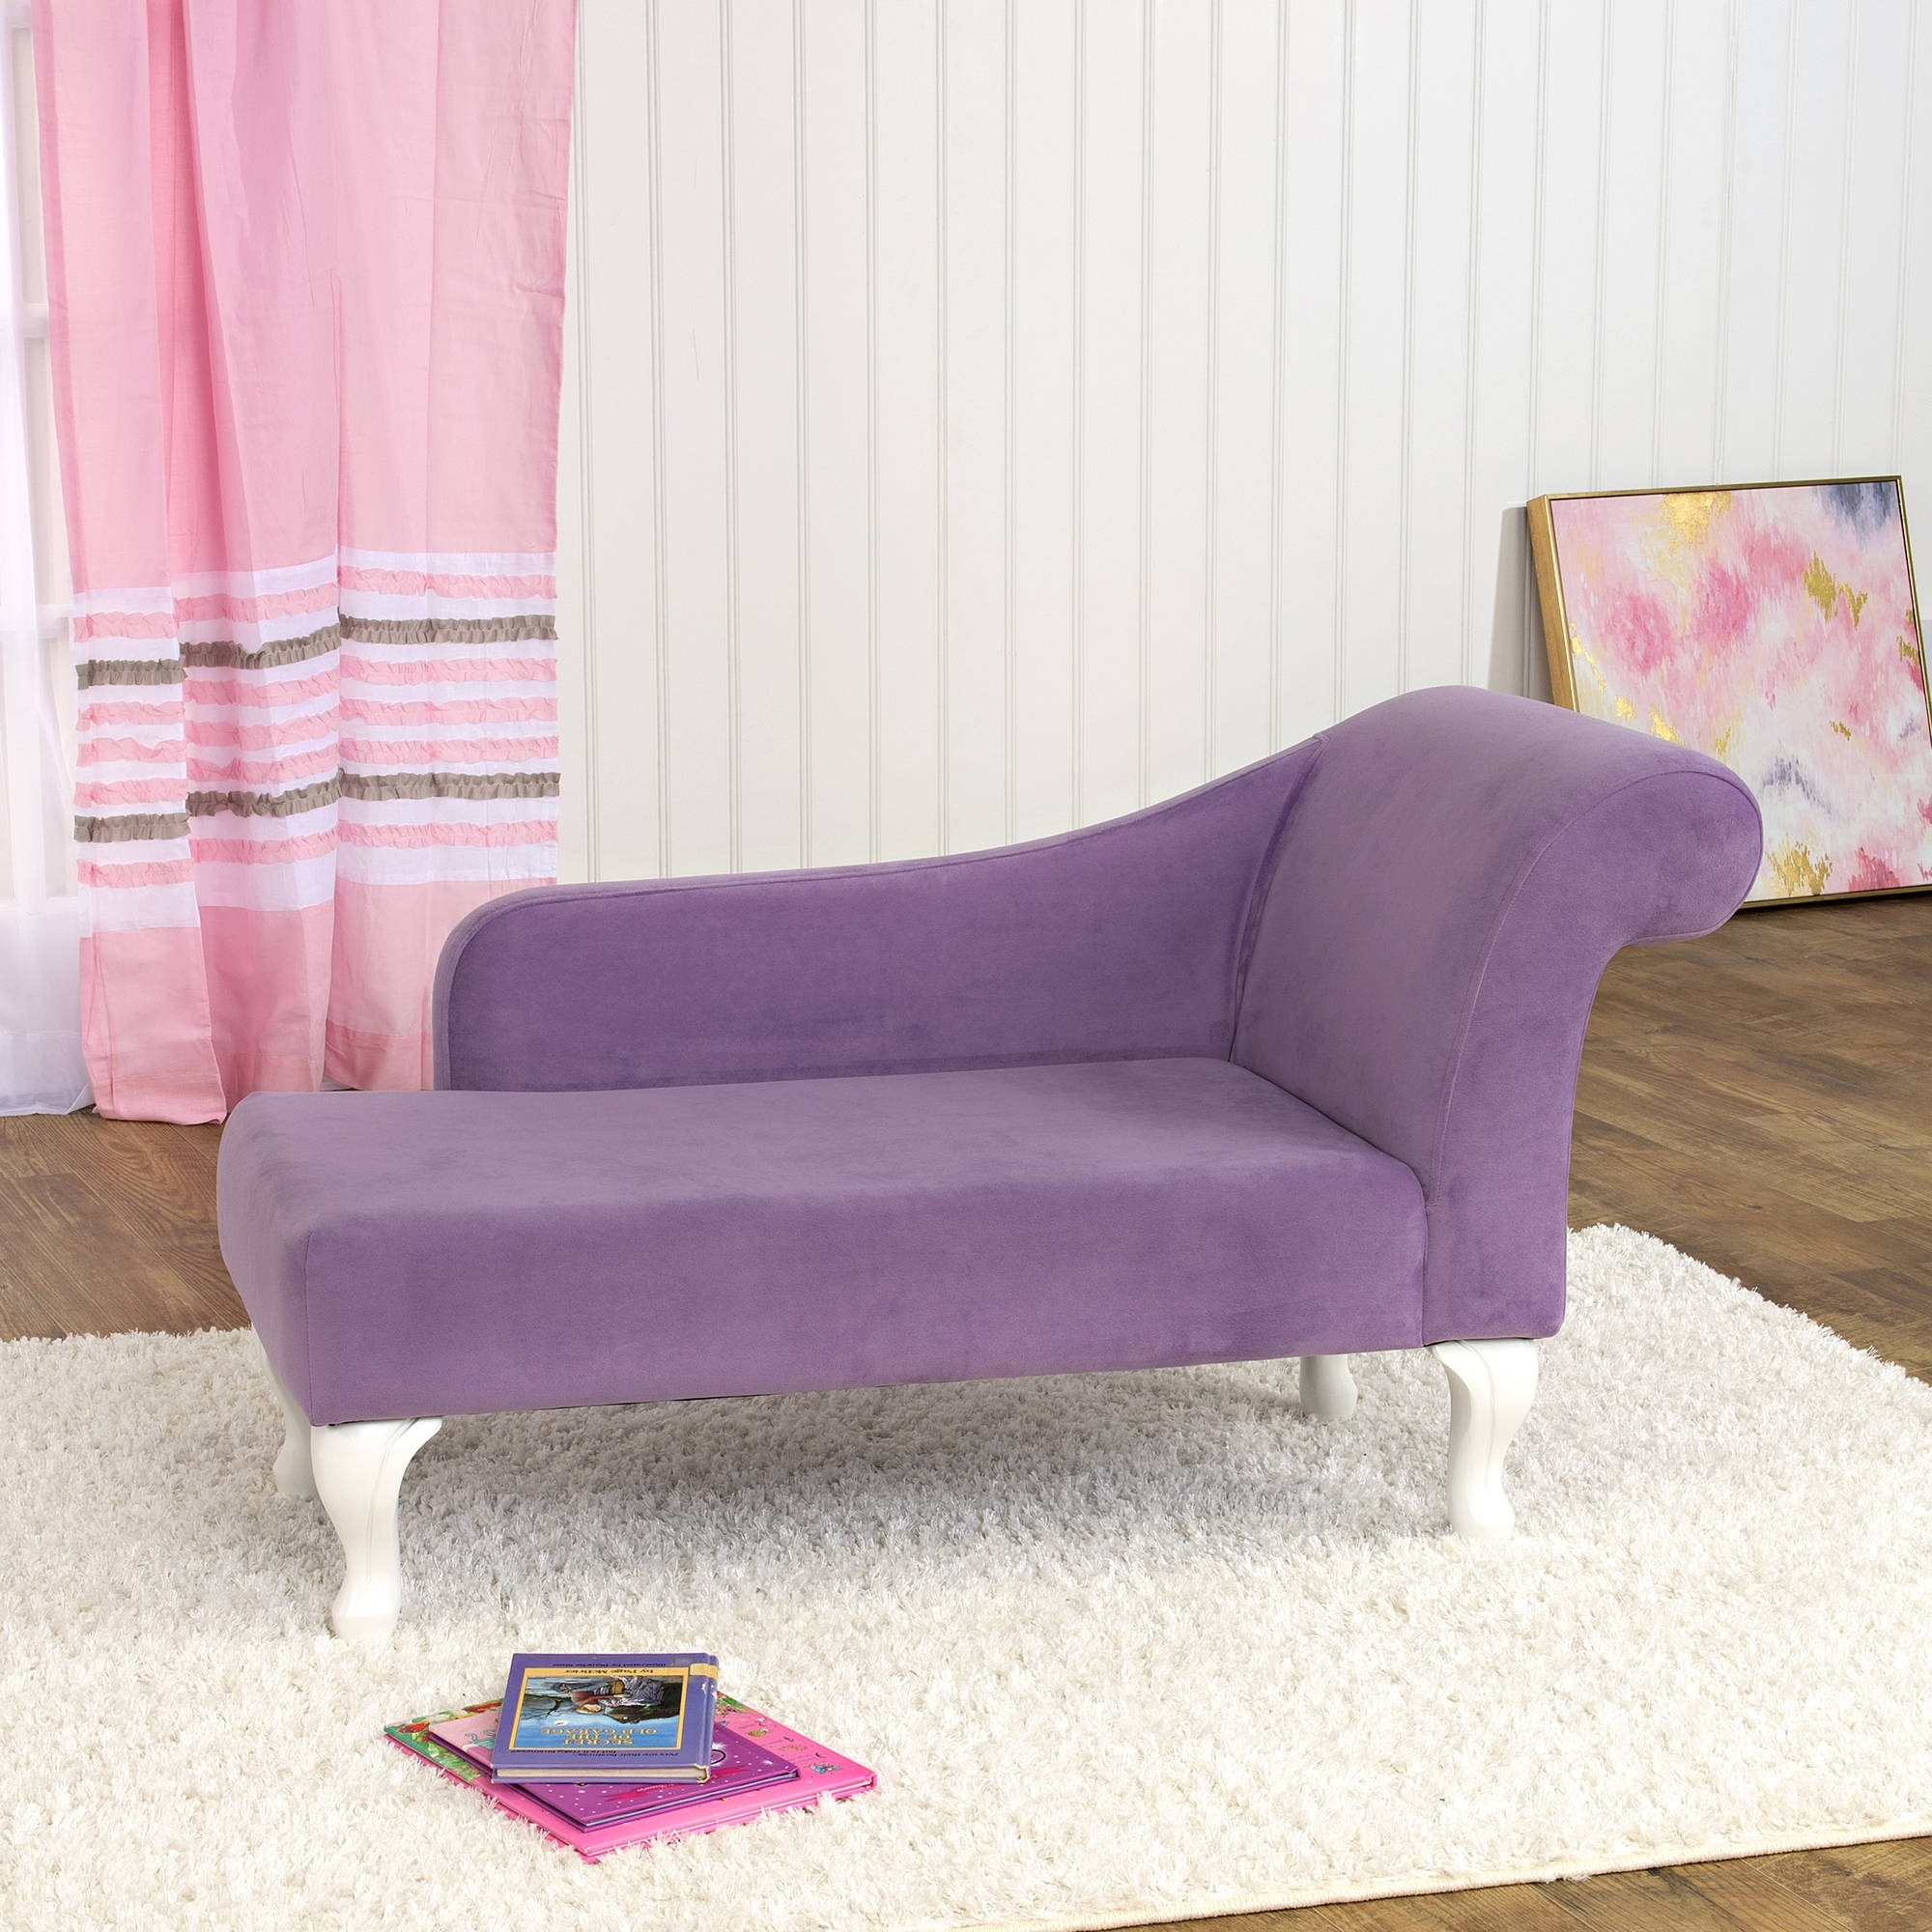 The purple chaise long with white legs in a bedroom